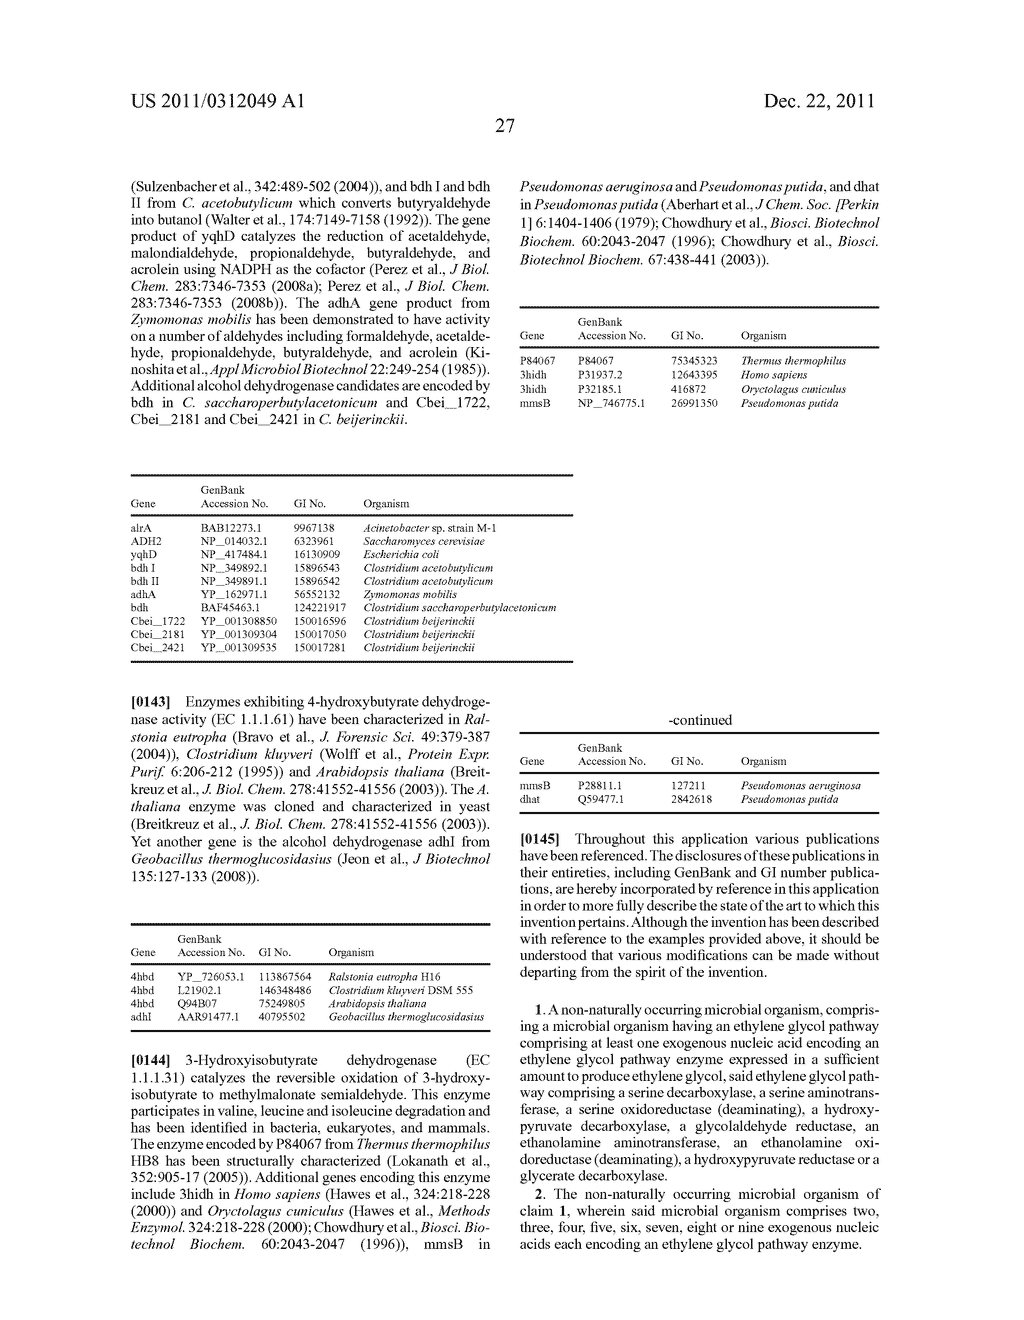 MICROORGANISMS AND METHODS FOR THE PRODUCTION OF ETHYLENE GLYCOL - diagram, schematic, and image 31